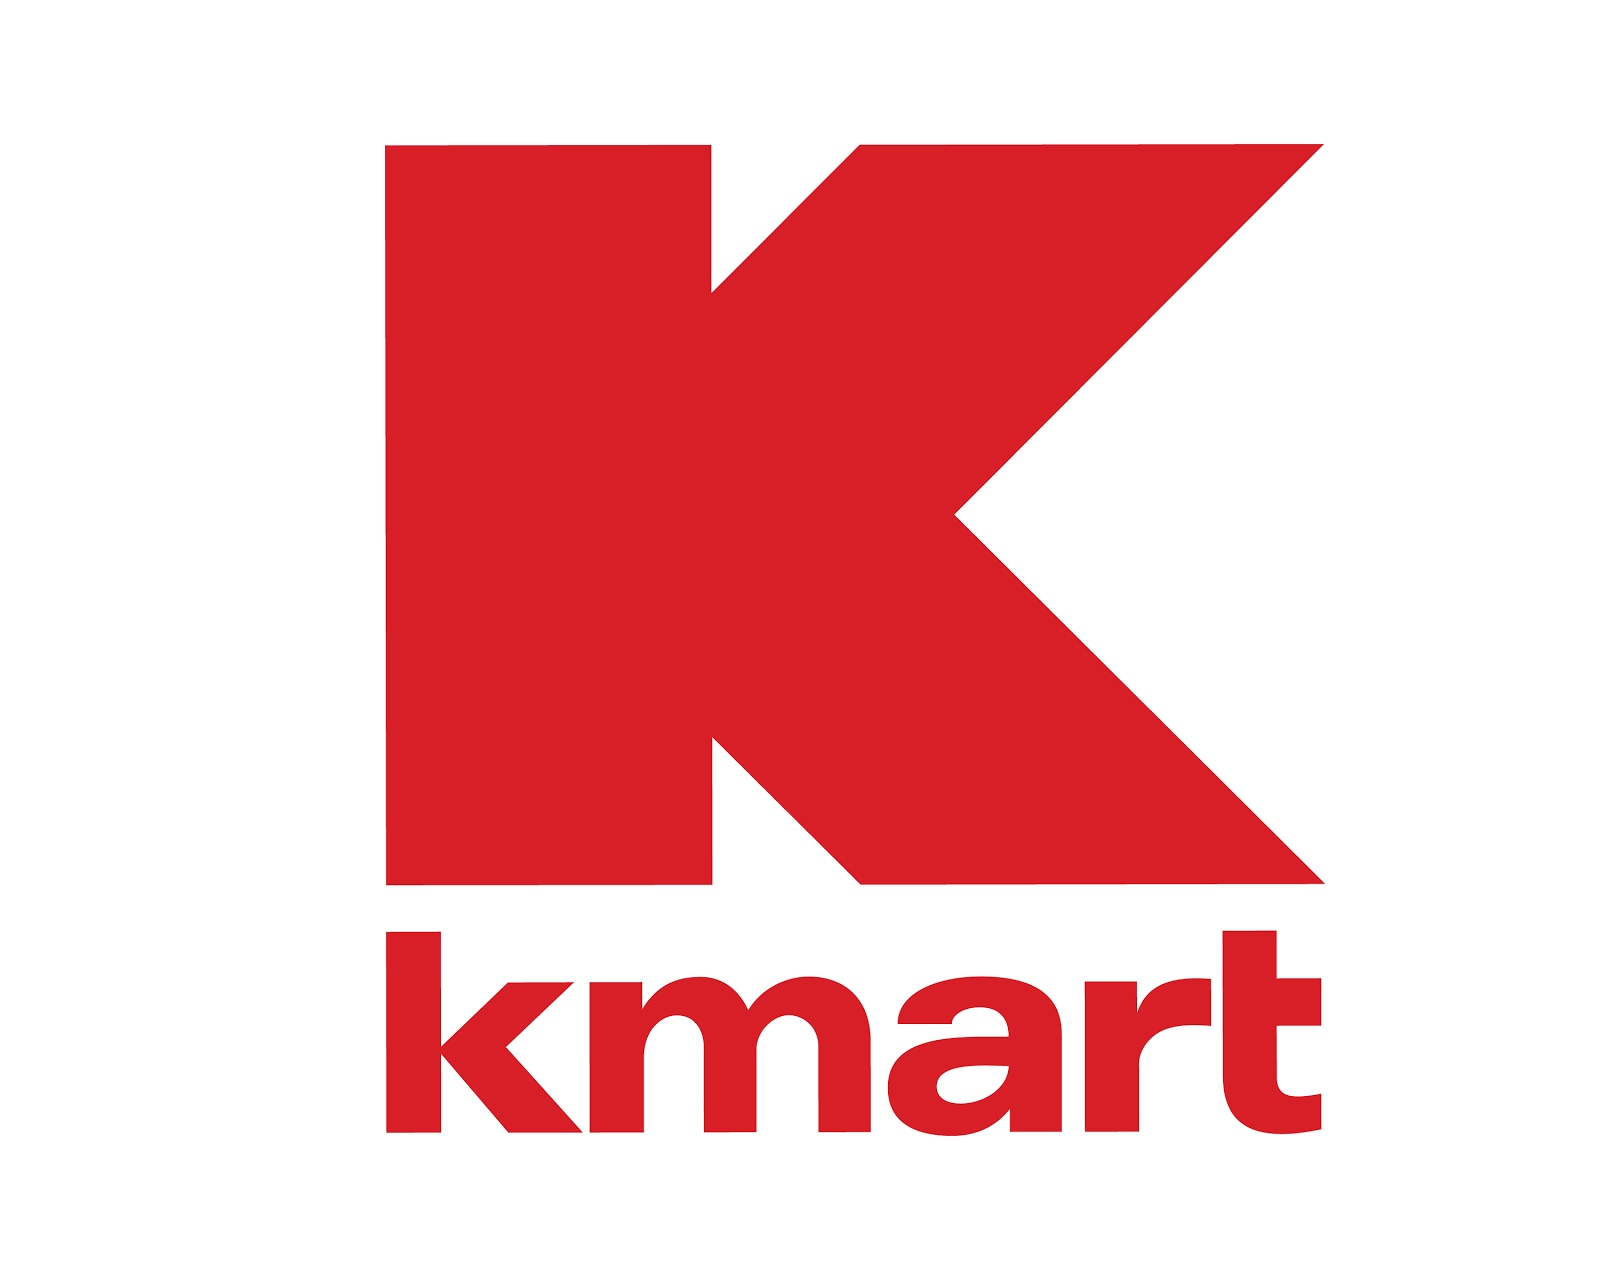 Kmart Corporation (/ ˈ k eɪ m ɑːr t / KAY-mart, doing business as Kmart and stylized as kmart) is an American big box department store chain headquartered in Hoffman Estates, Illinois, United States.